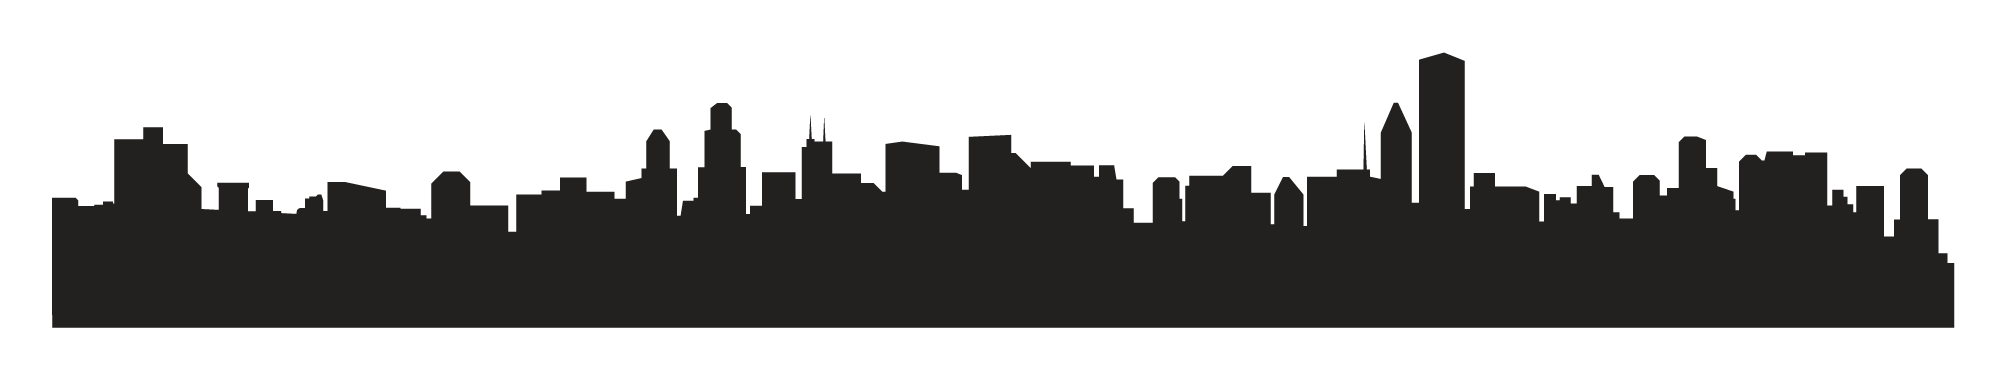 City clipart black and white png clip art transparent stock Black And White City PNG Transparent Black And White City.PNG Images ... clip art transparent stock